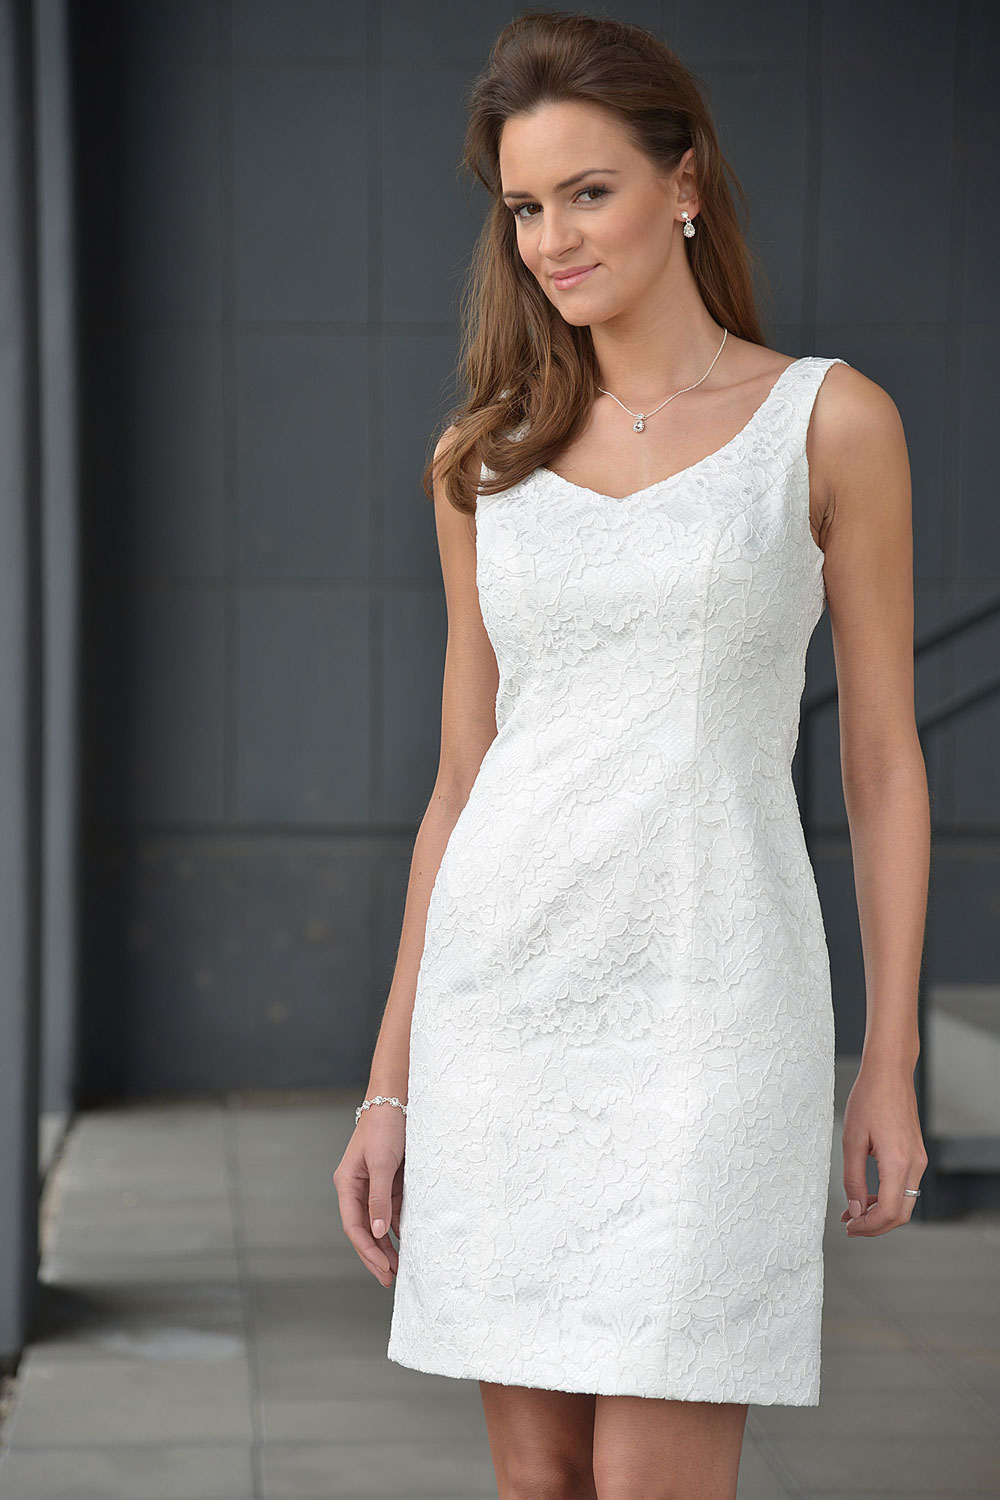 Standesamtkleid A7010 MissGermany-Collection